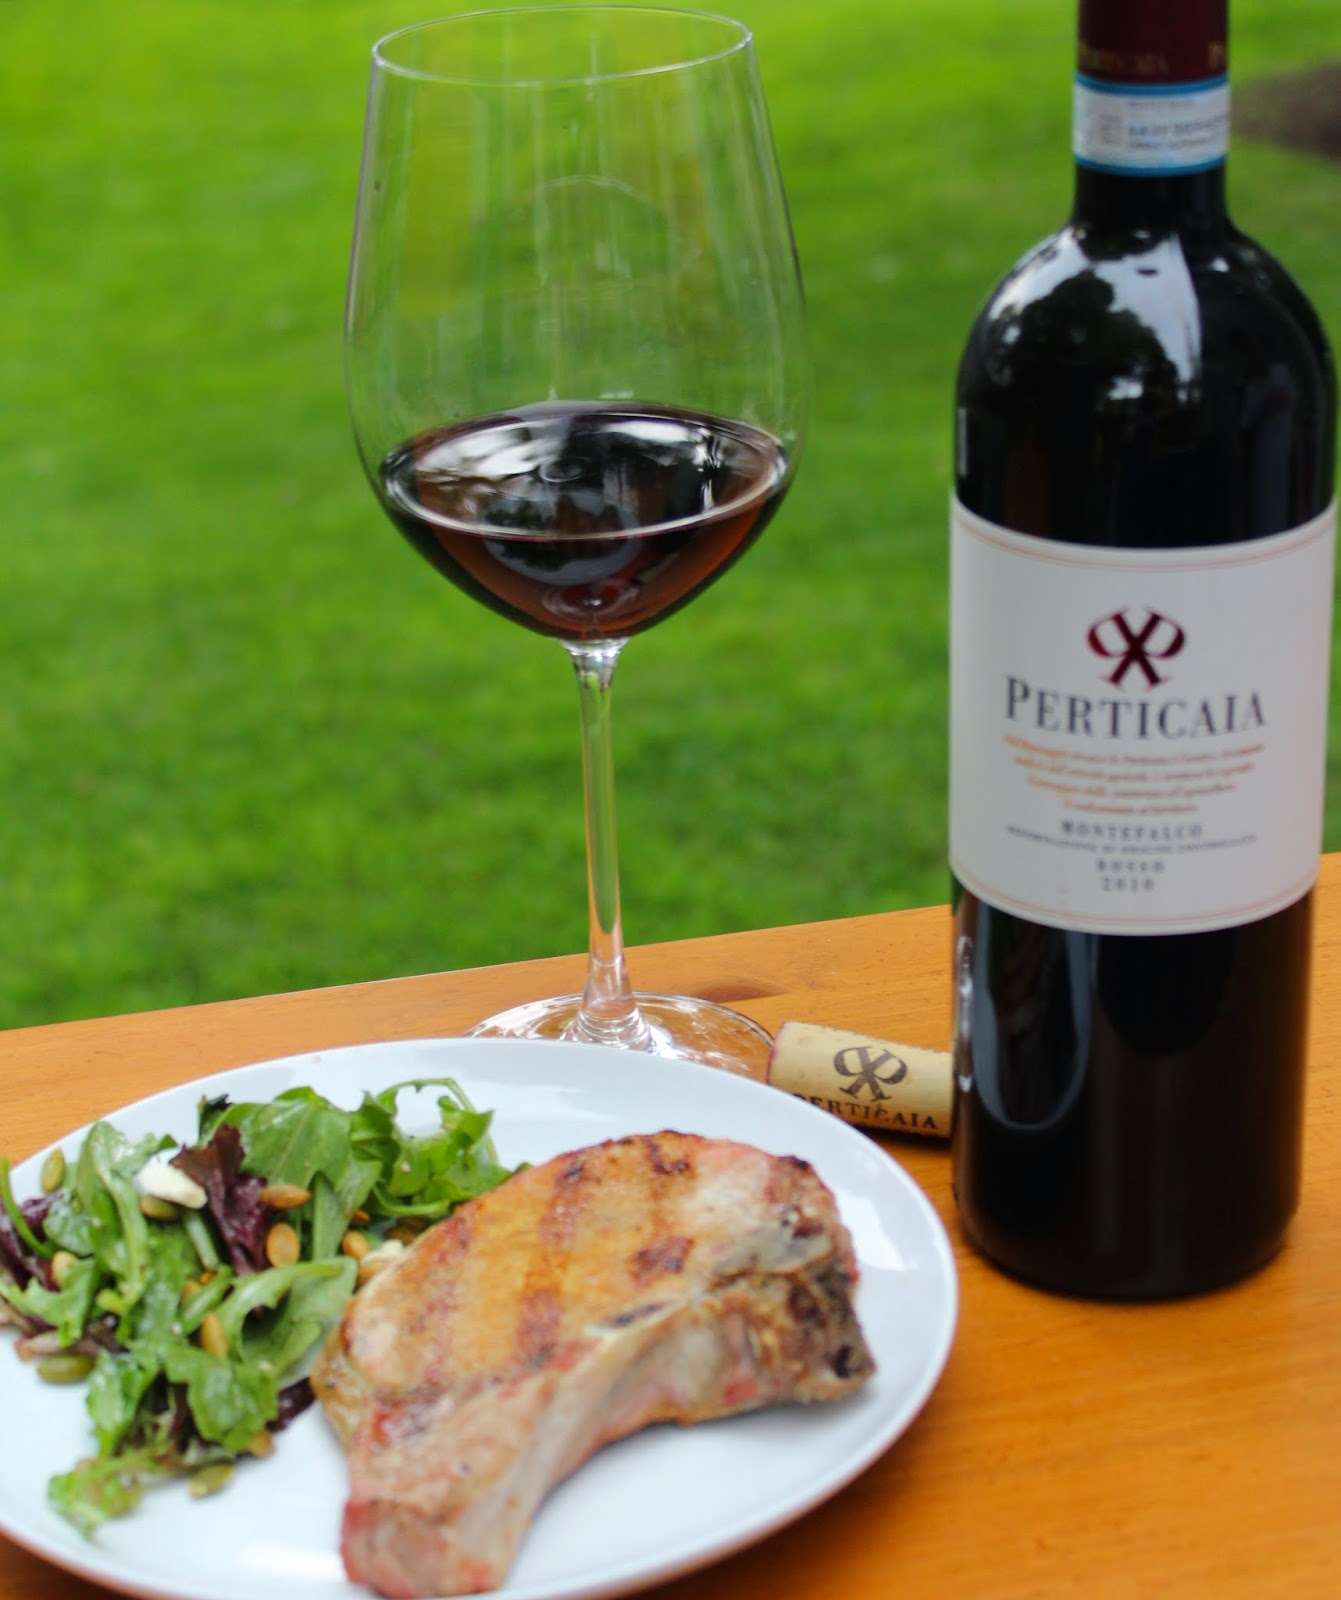 Grilled Pork Chops Served with an Italian red wine: Azienda Agraria La Perticaia Montefalco Rosso